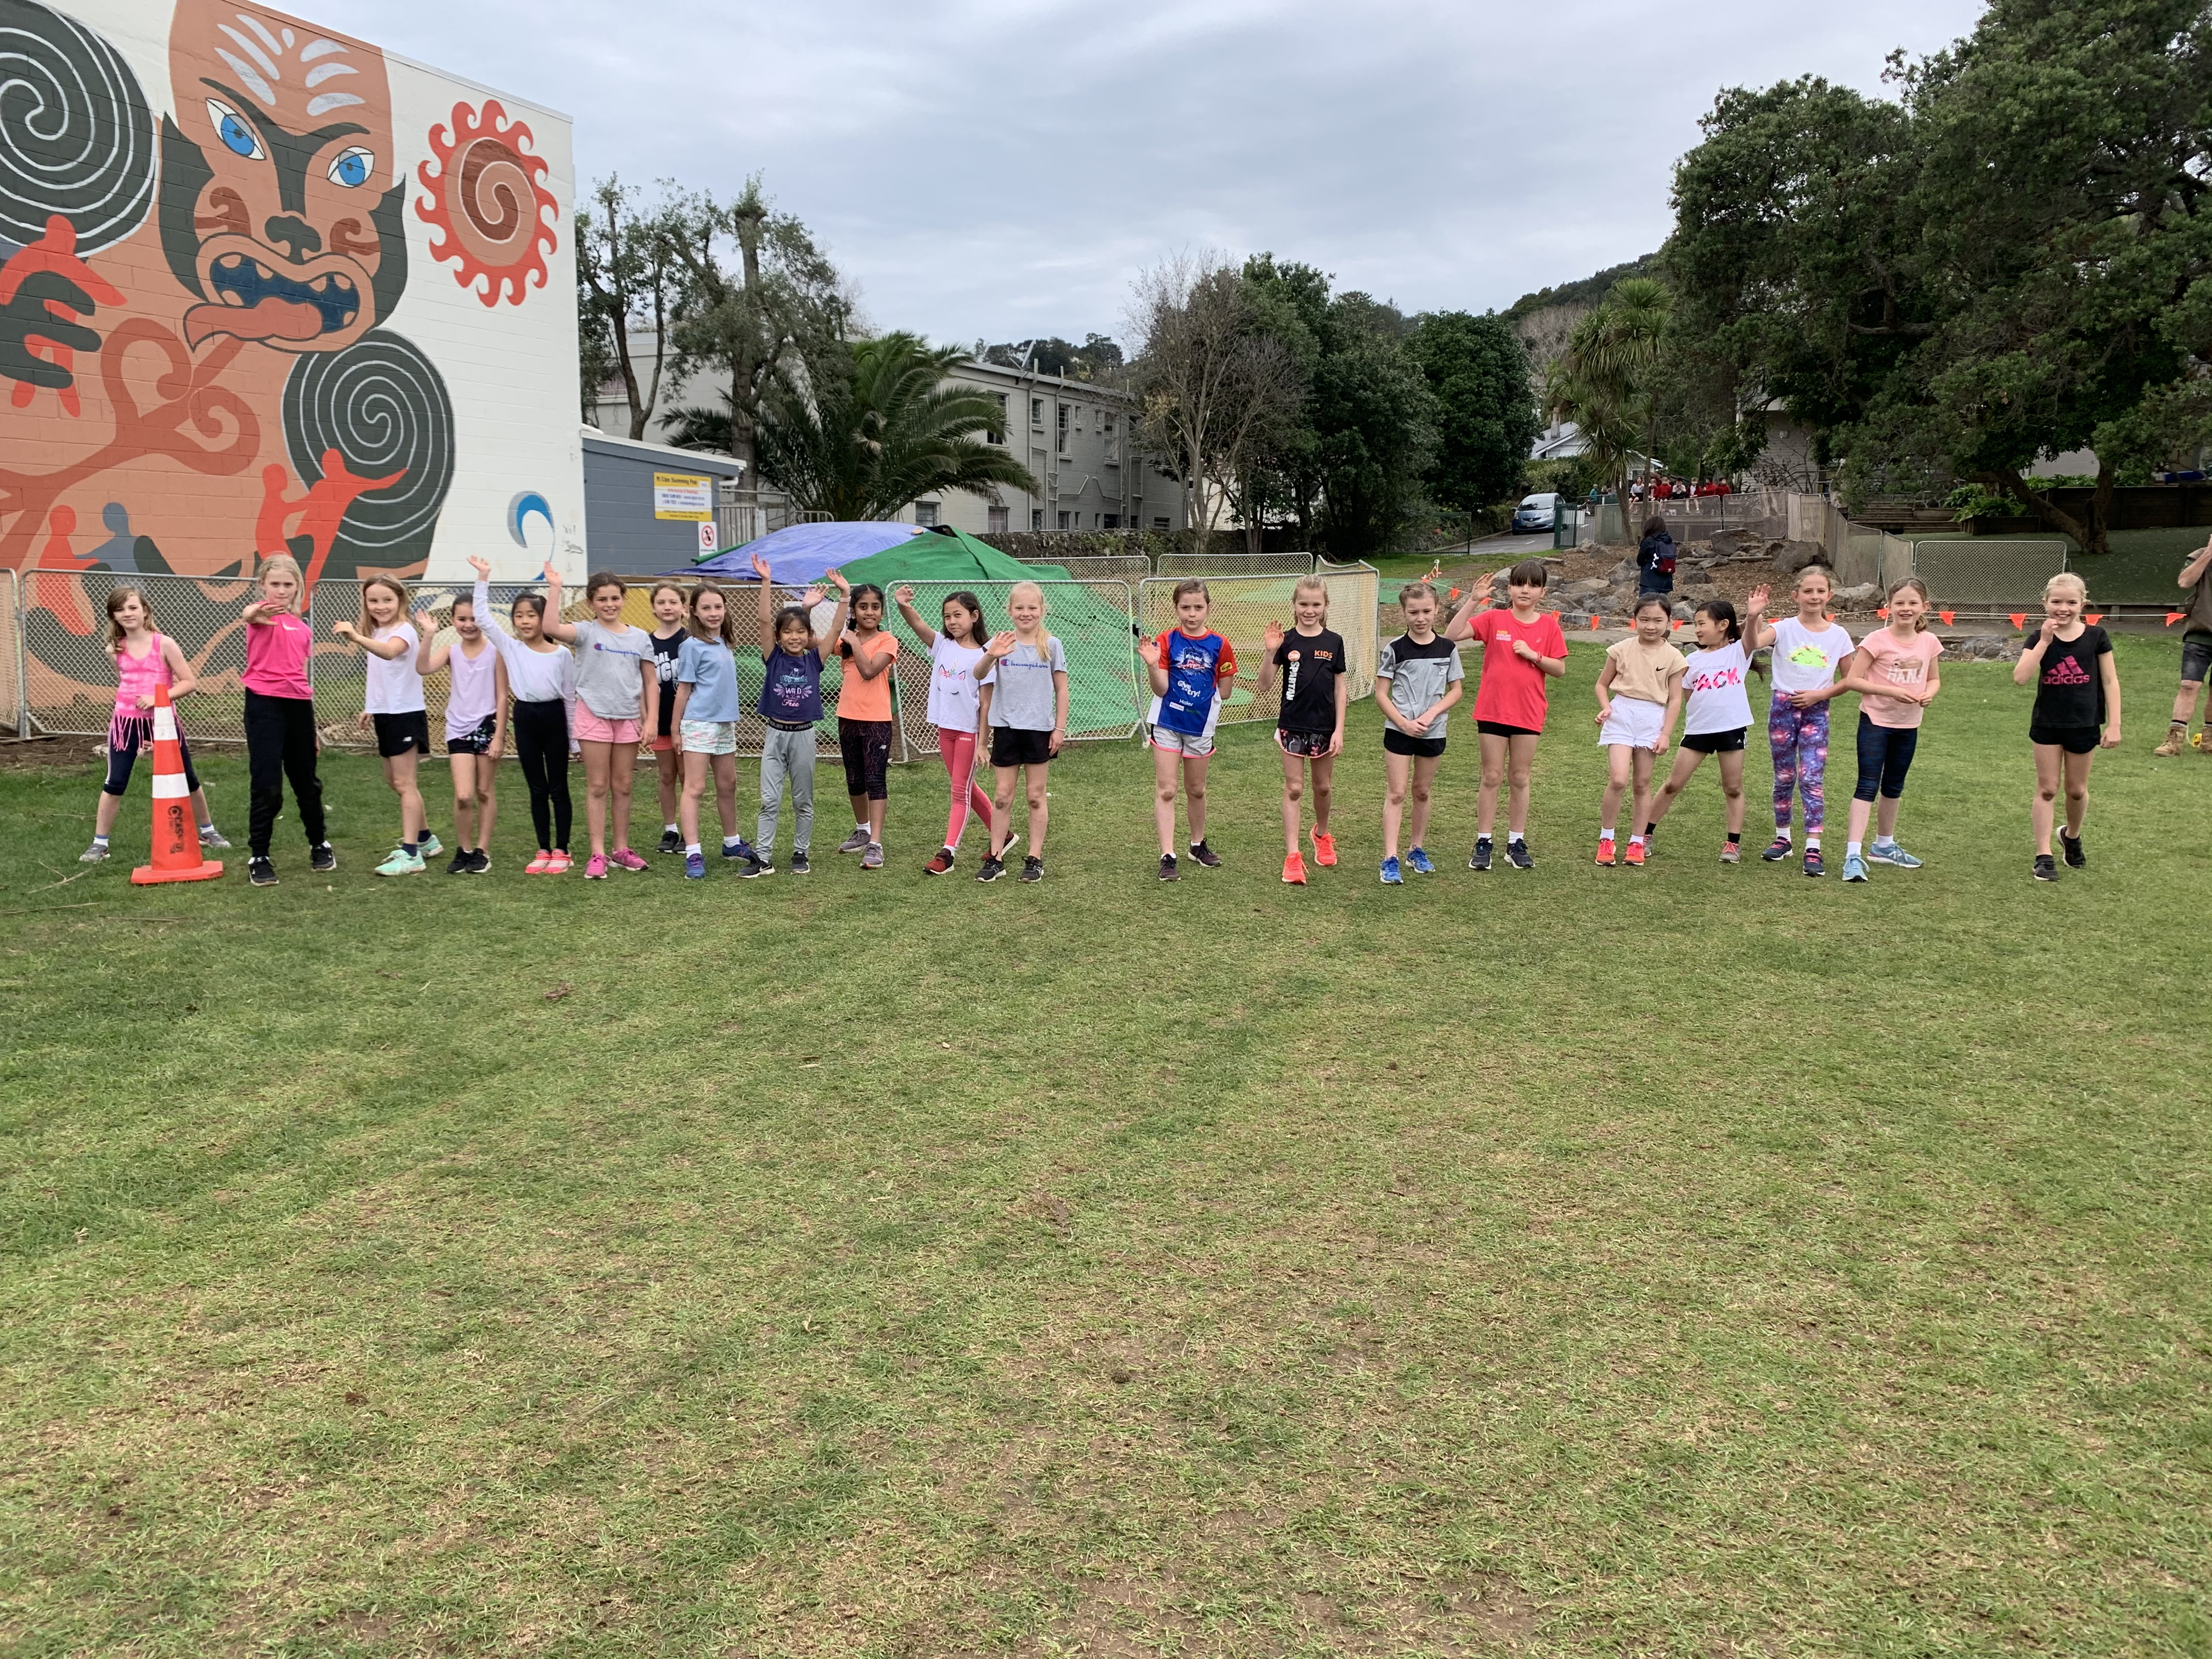 Year 4 Girls Challenge 4 runners